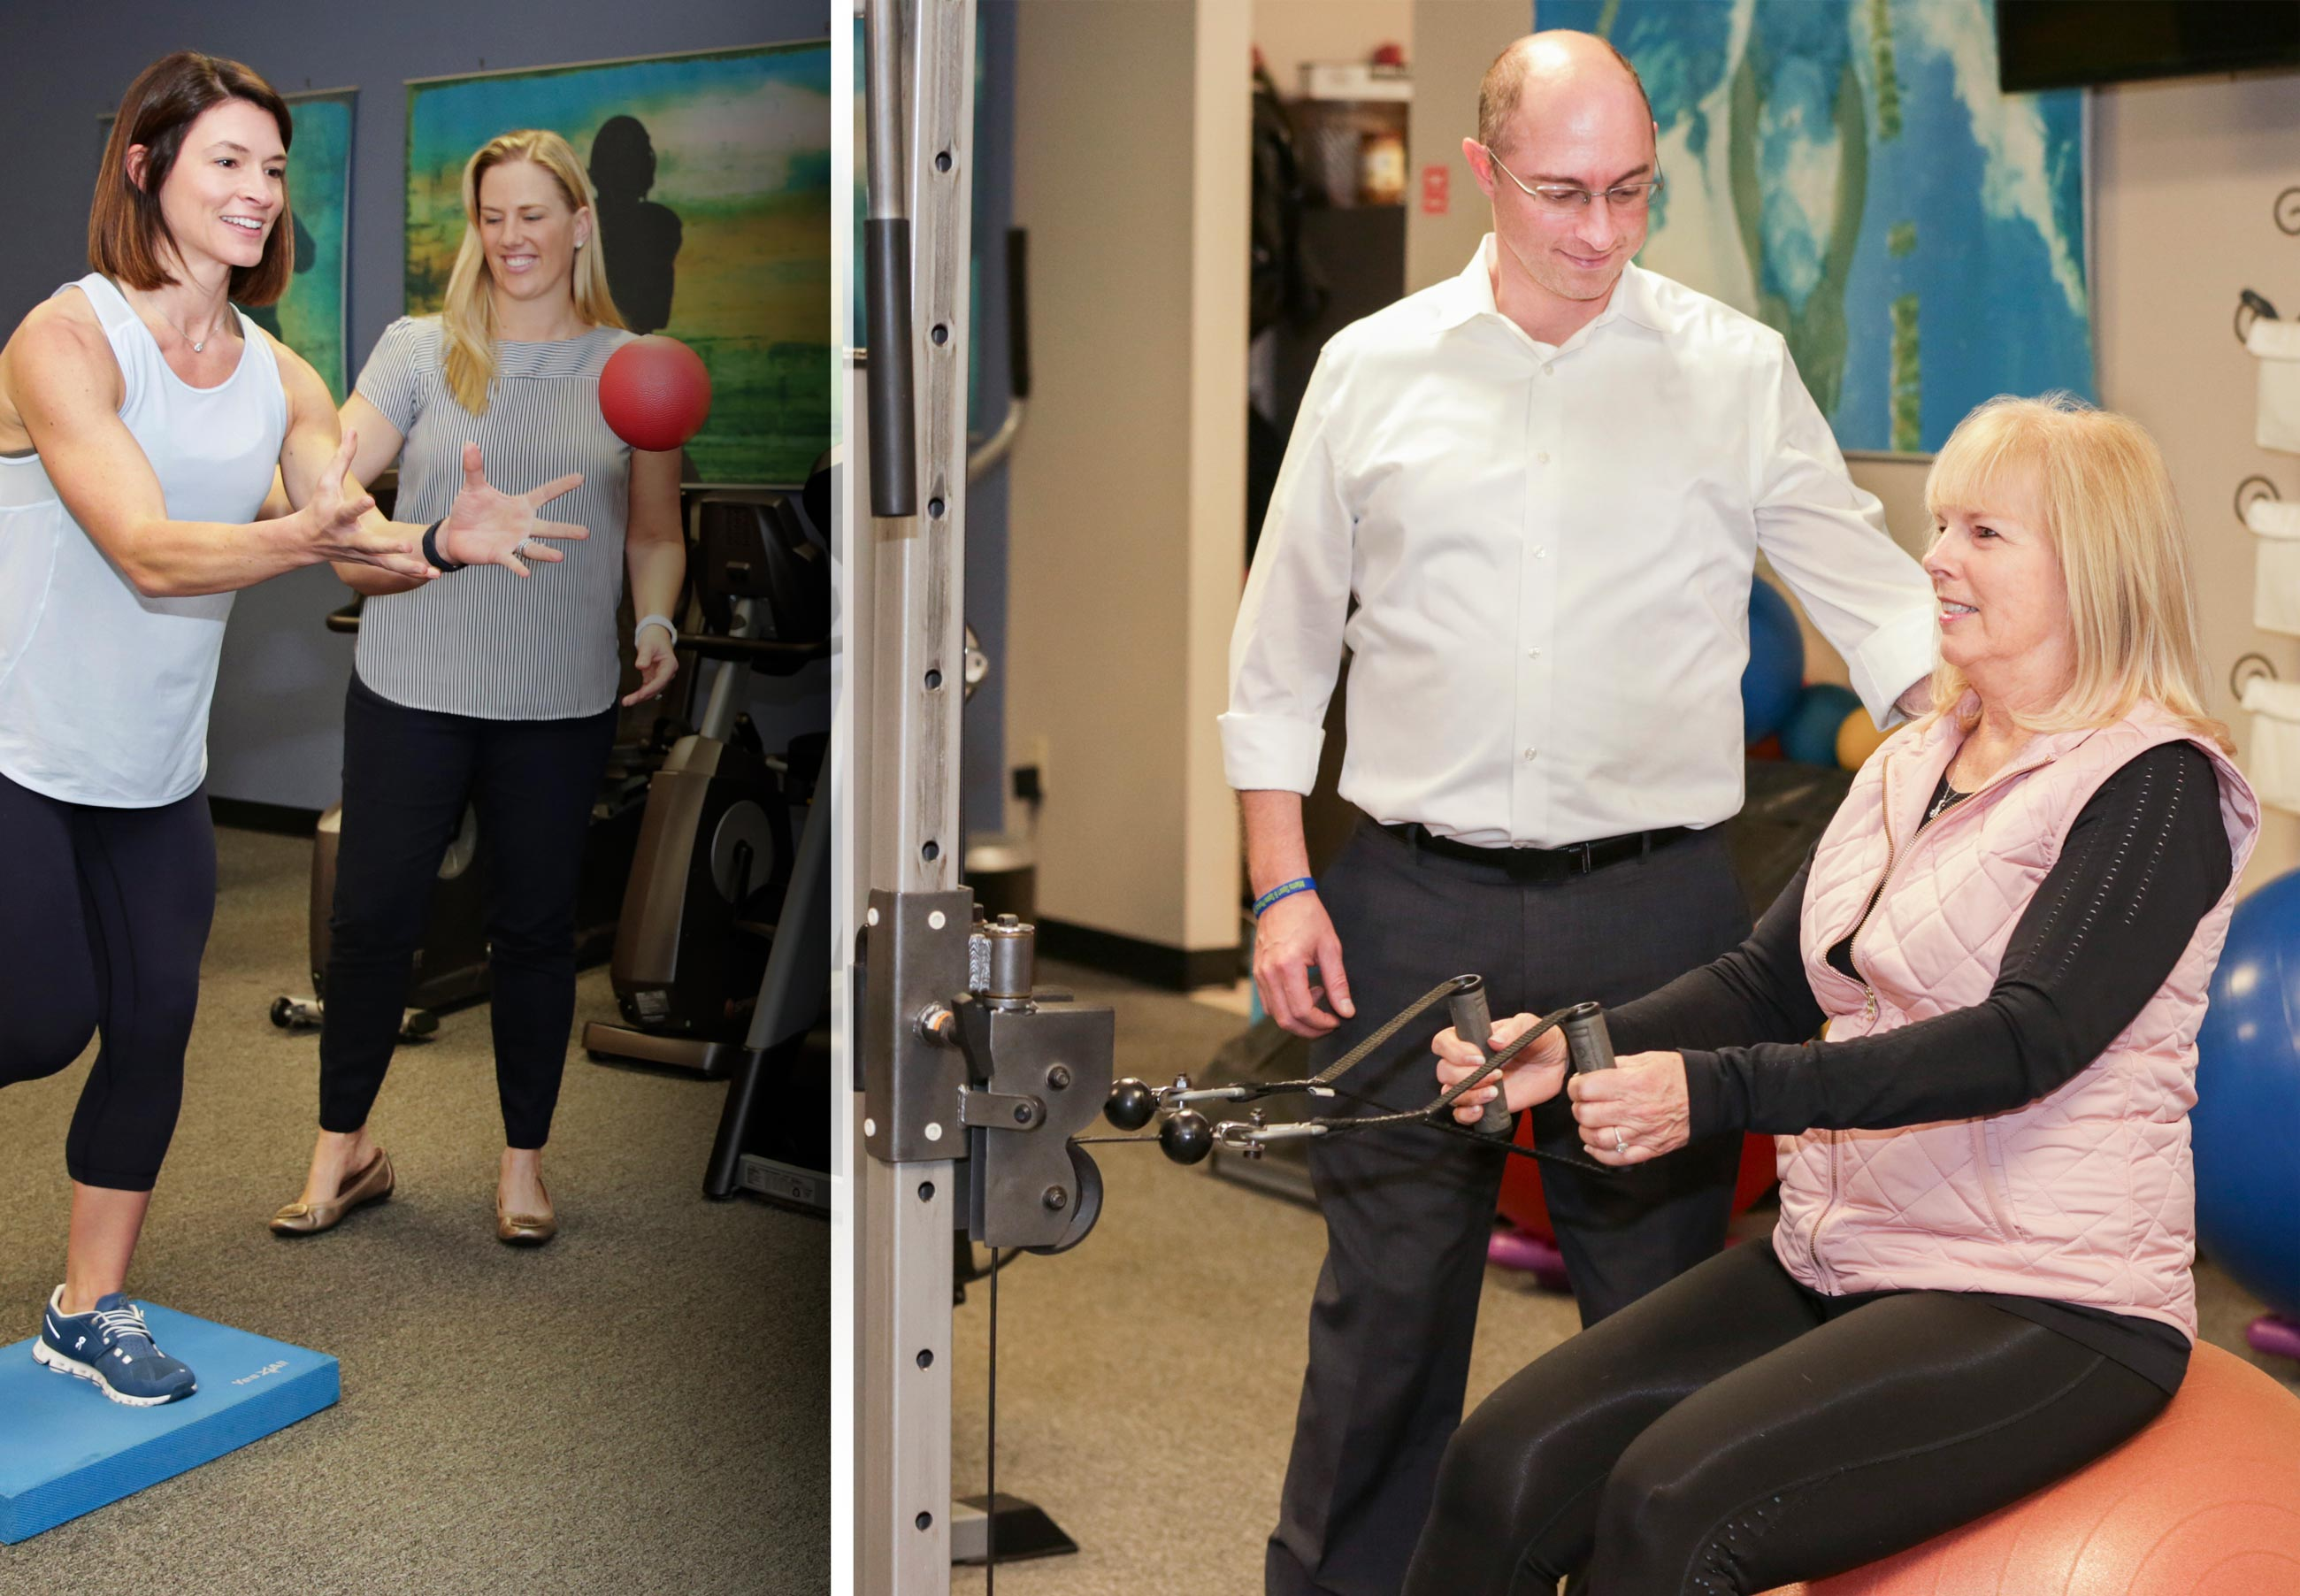 With Physical Therapy we focus on relieving your pain, promoting healing, restoring function, and preventing re-injury